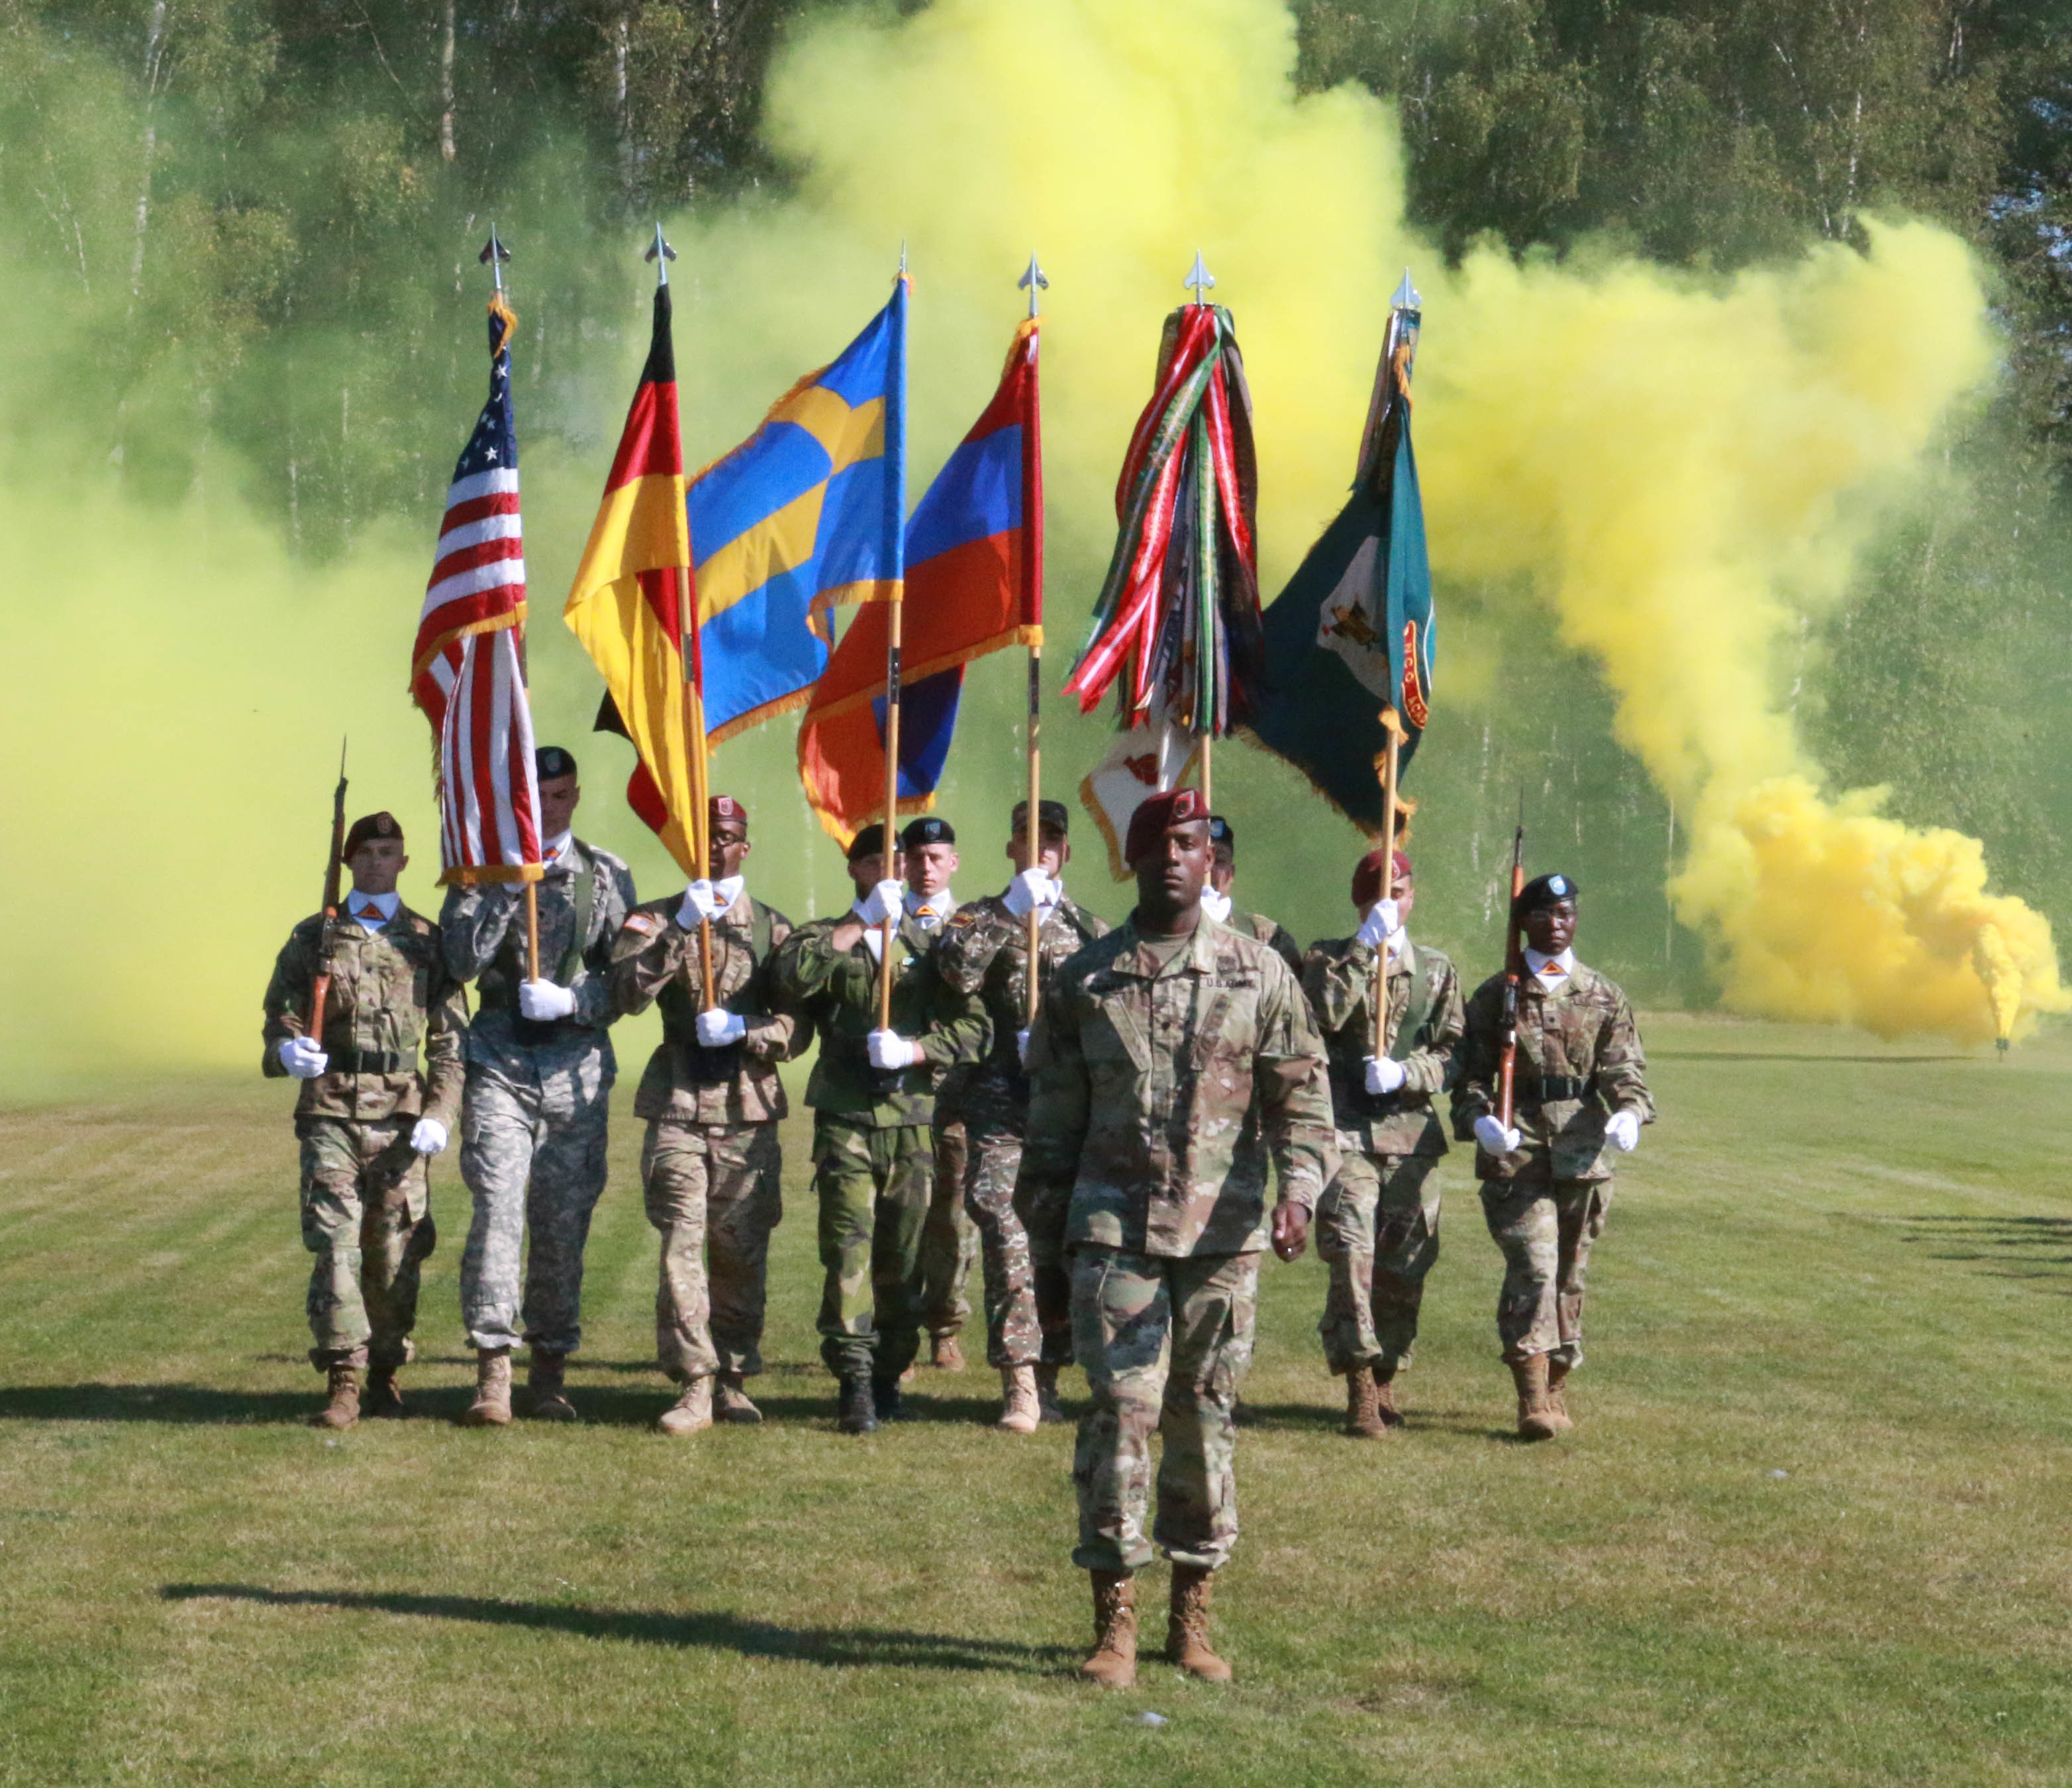 GRAFENWOEHR, Germany (September 14, 2016) – The students from the Basic Leader's Course at the 7th Army Training Command's Noncommissioned Officer Academy graduate Sept. 8 at the academy's graduation field here. Class 008-16 was the first class to graduate international service members from the Swedish and the Armenian Armed Forces.